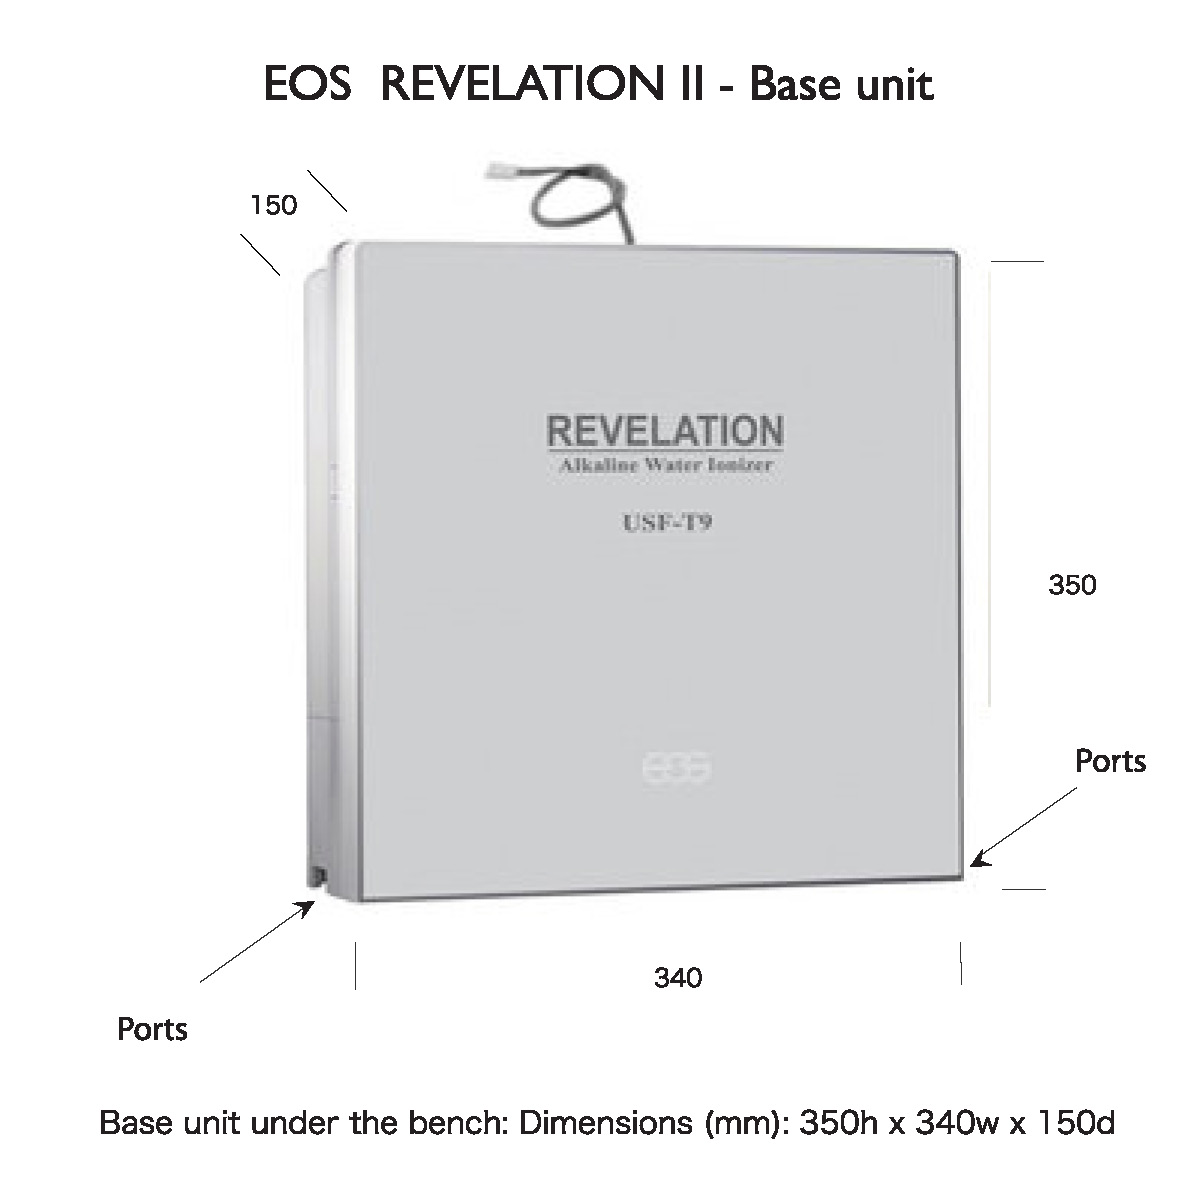 EOS Revelation -dimensions of base unit